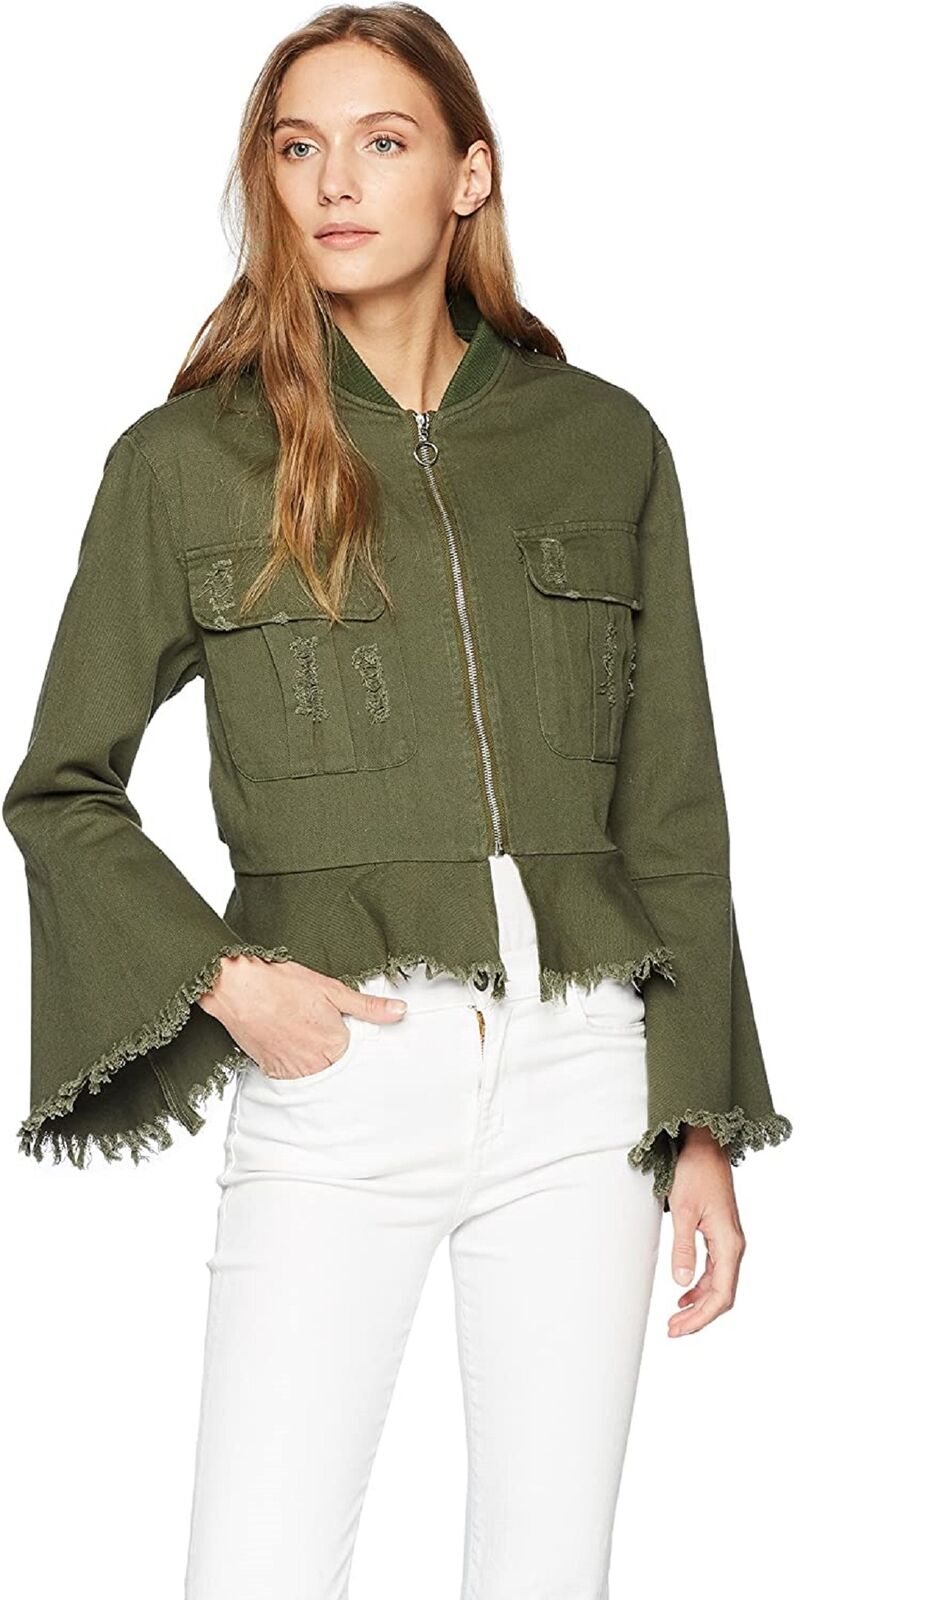 Bagatelle Women's Spring Distressed Bell Sleeve Bomber Jacket, Olive, XS